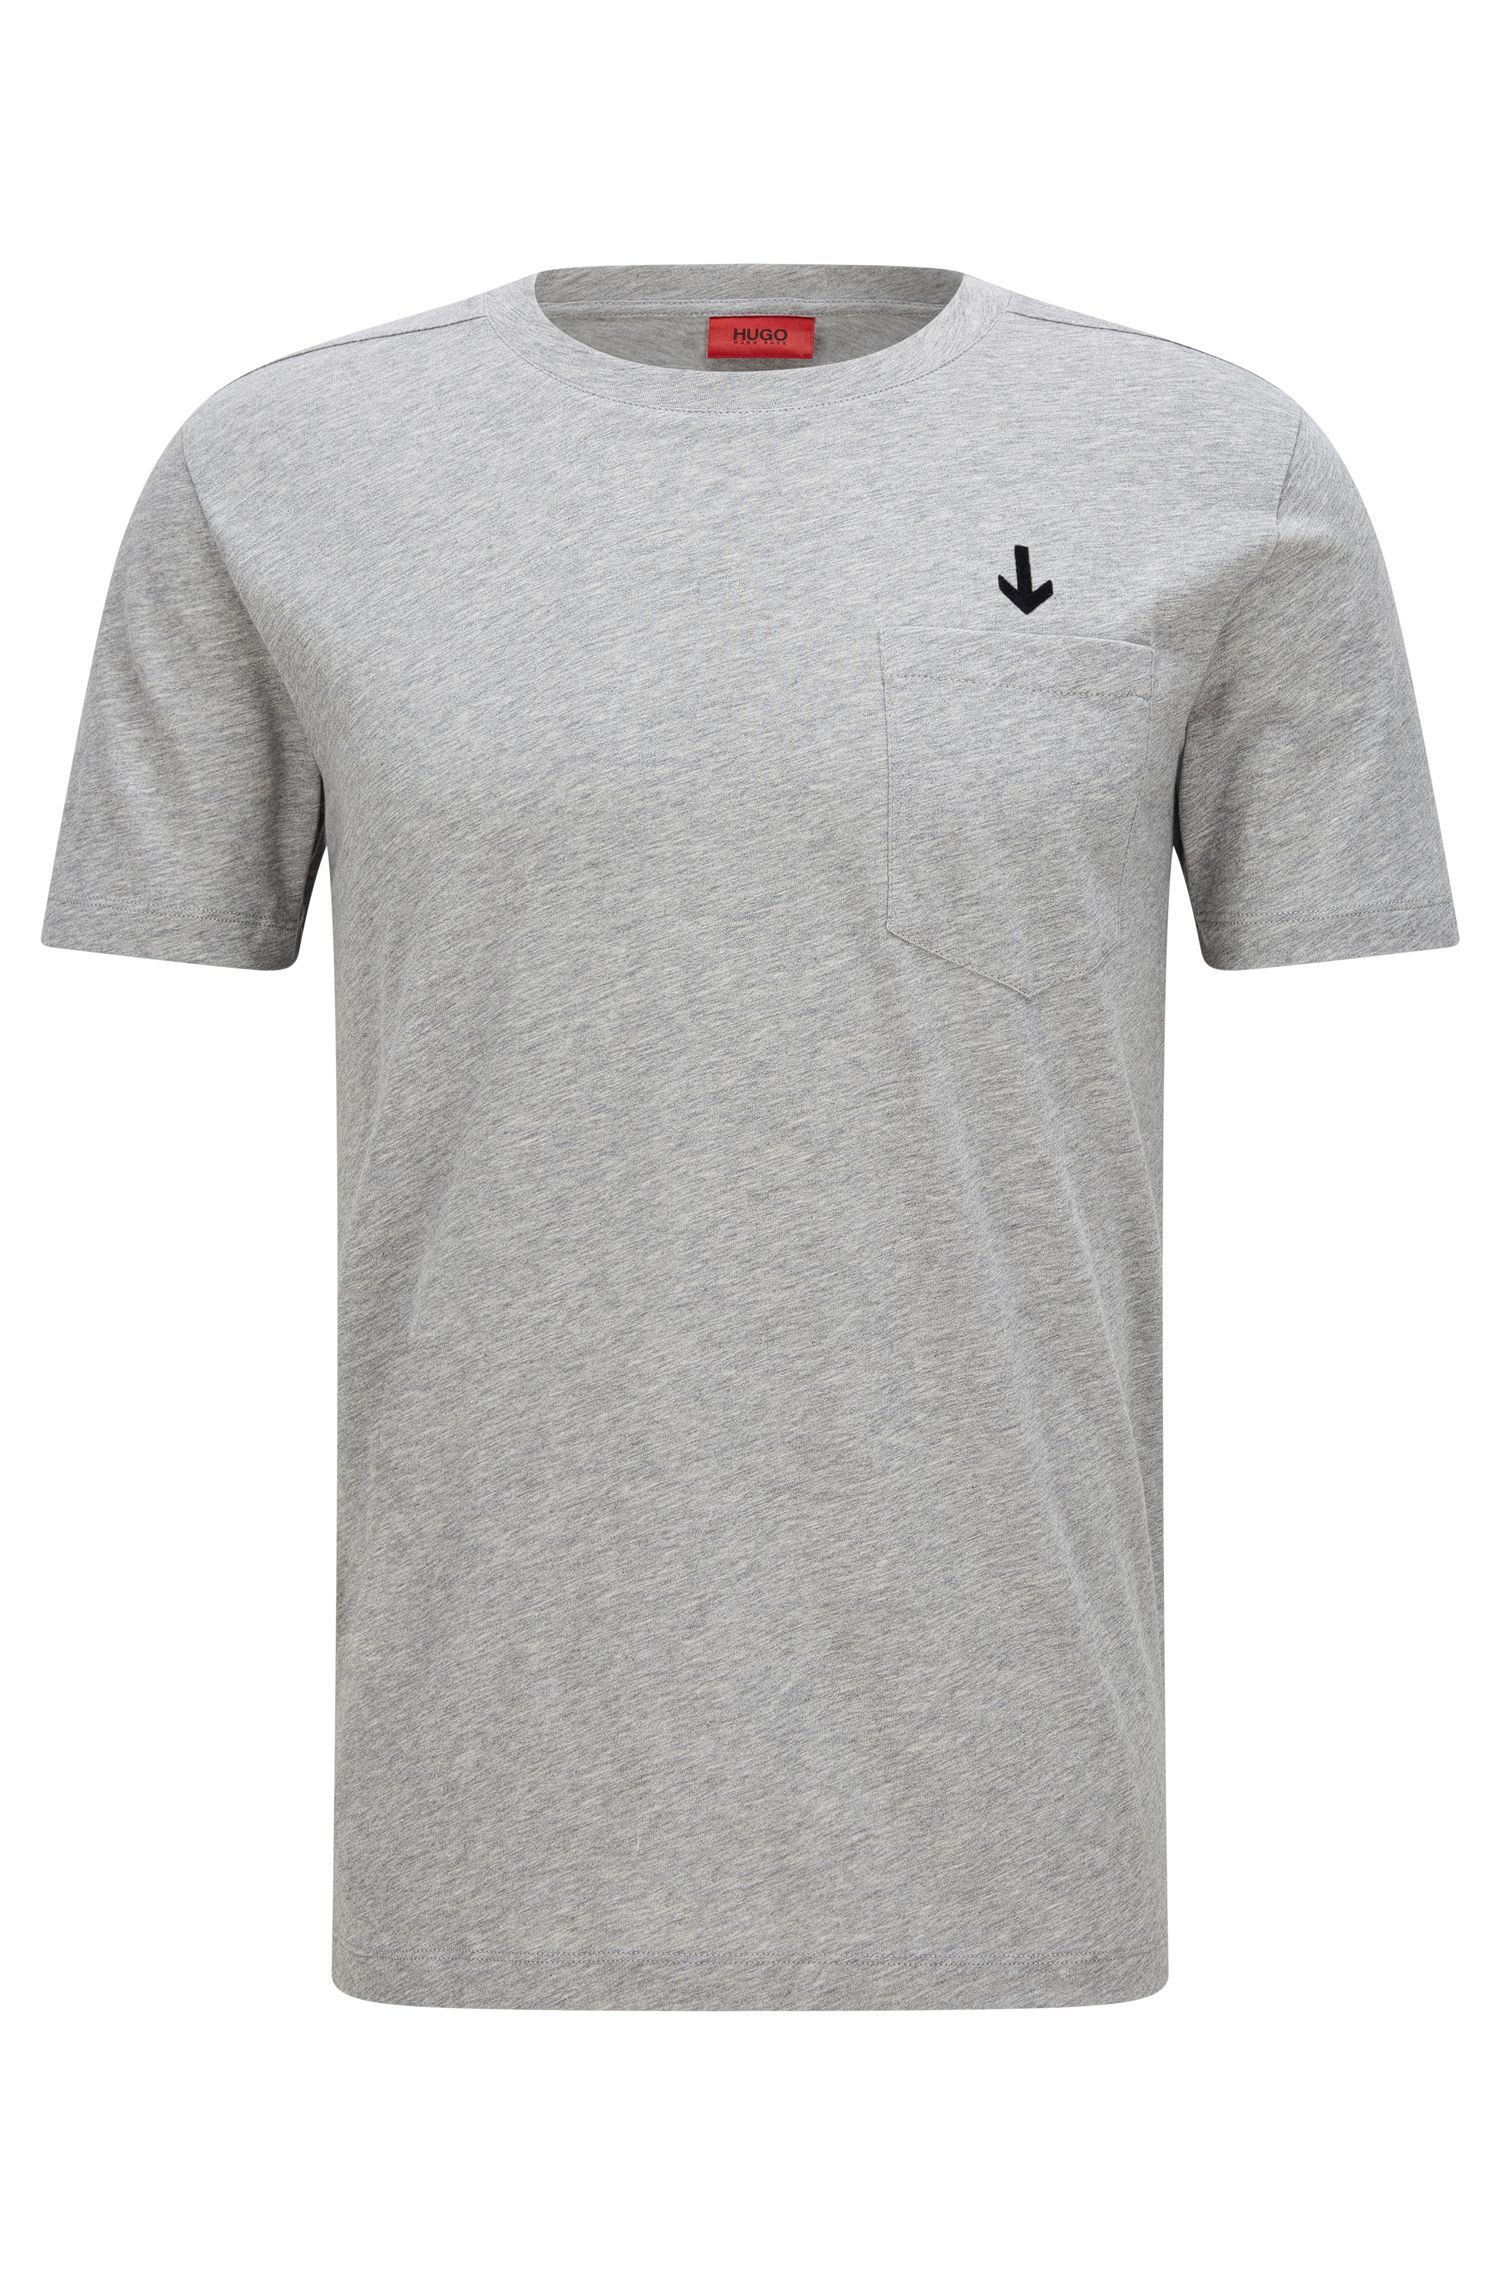 Cotton Embroidered T-Shirt | Darwood, Open Grey